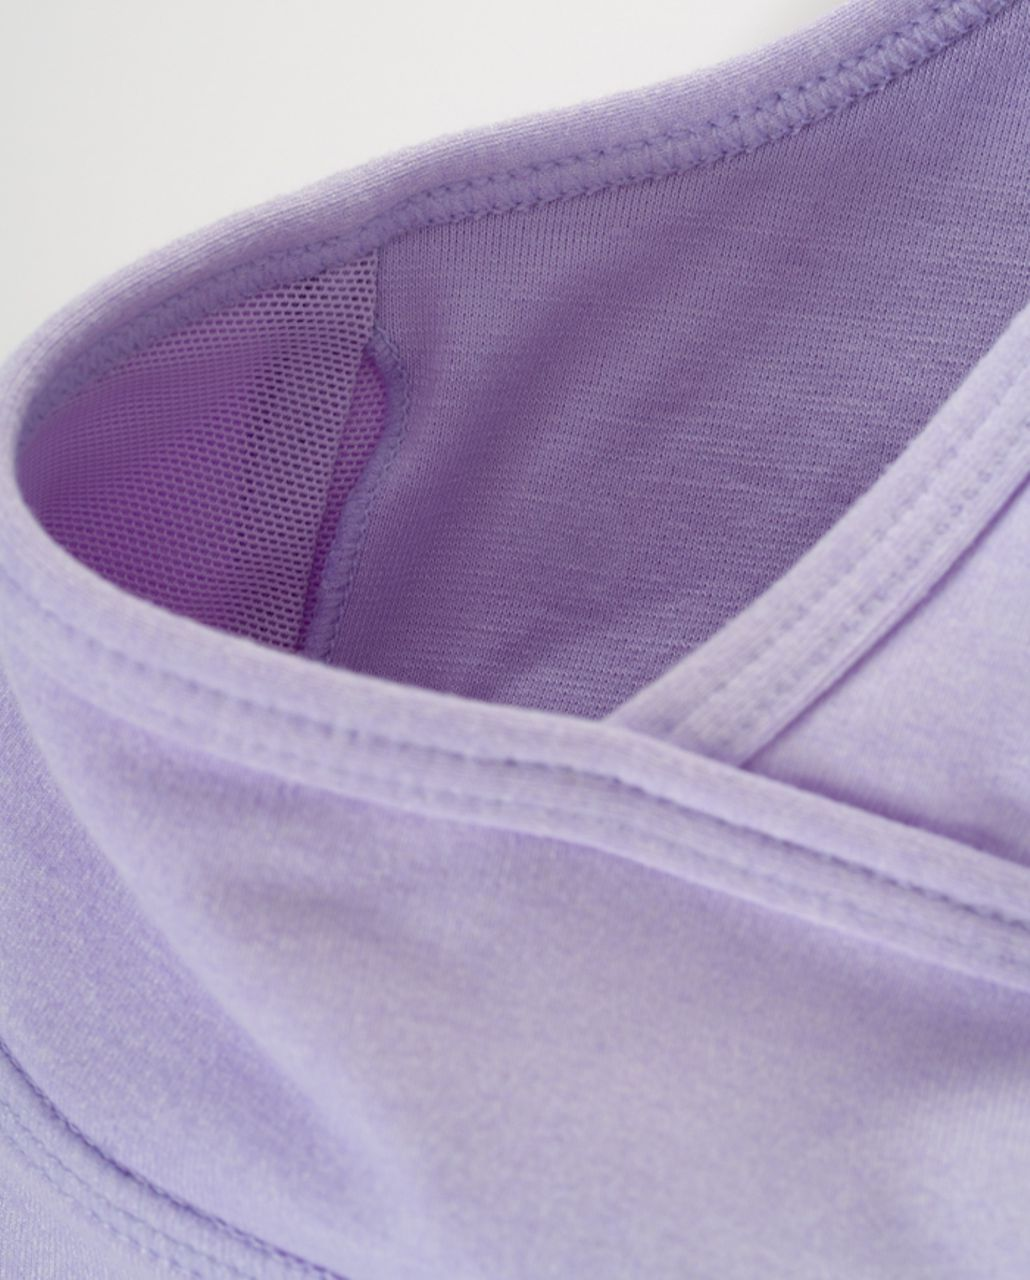 Lululemon Deep V Tank - Heathered Lilac